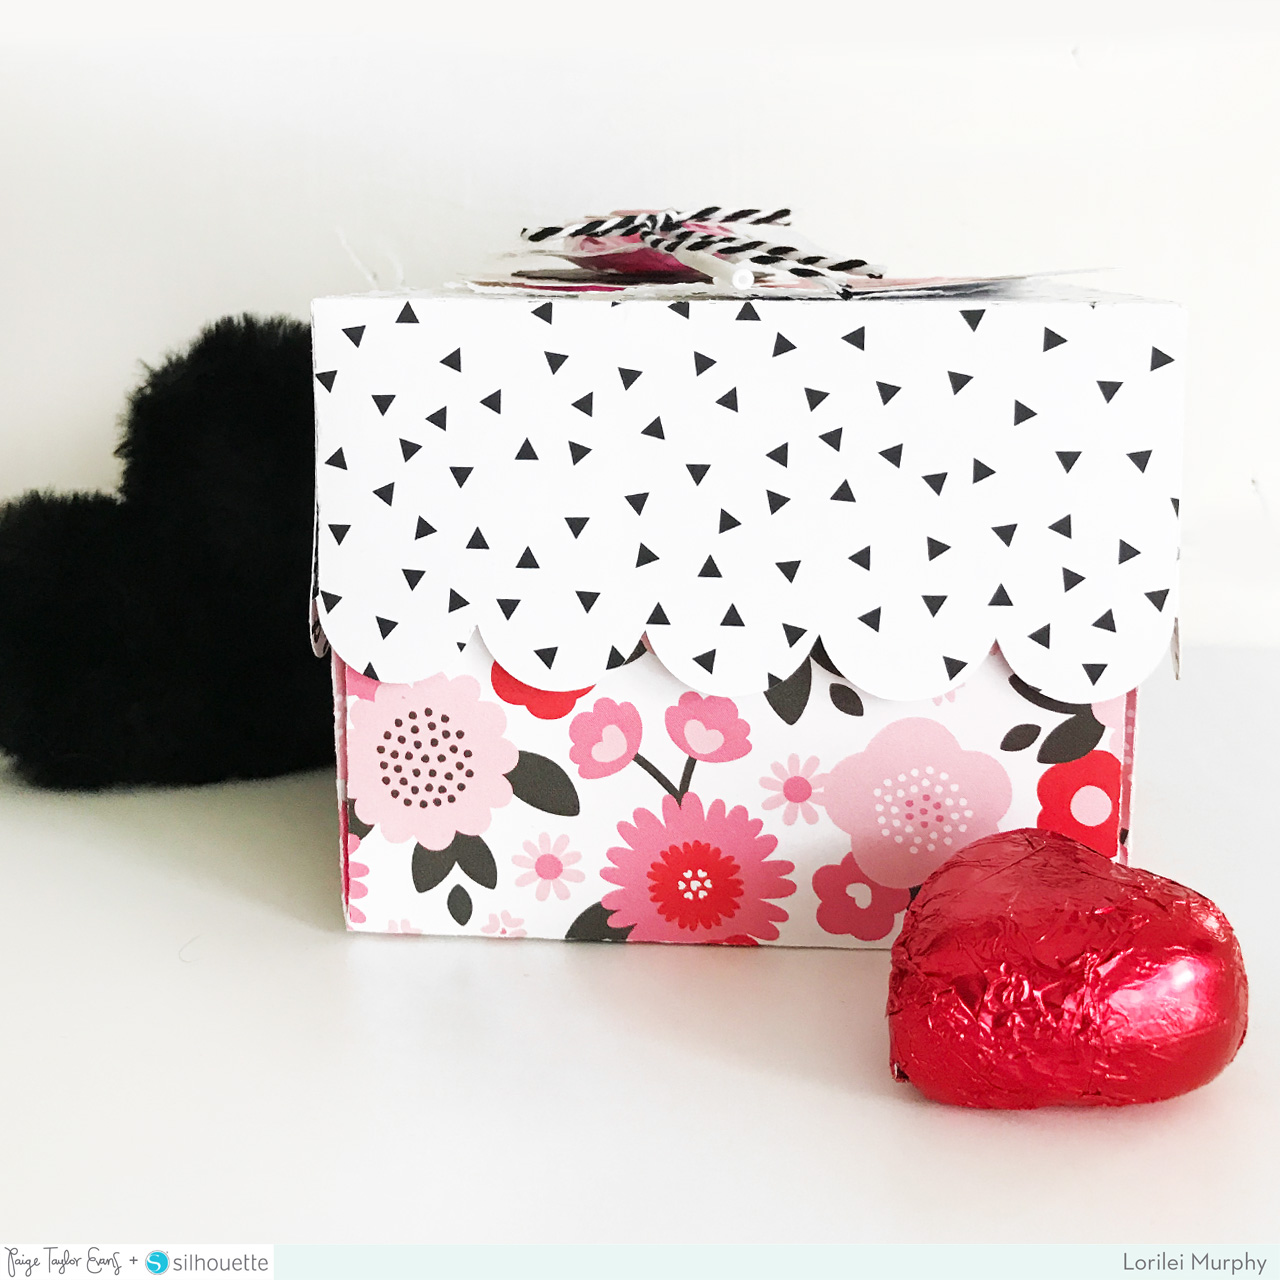 This Exploding Box Photo Album Is So Unique And Amazing: Valentine Heart Exploding Box By Lorilei Murphy